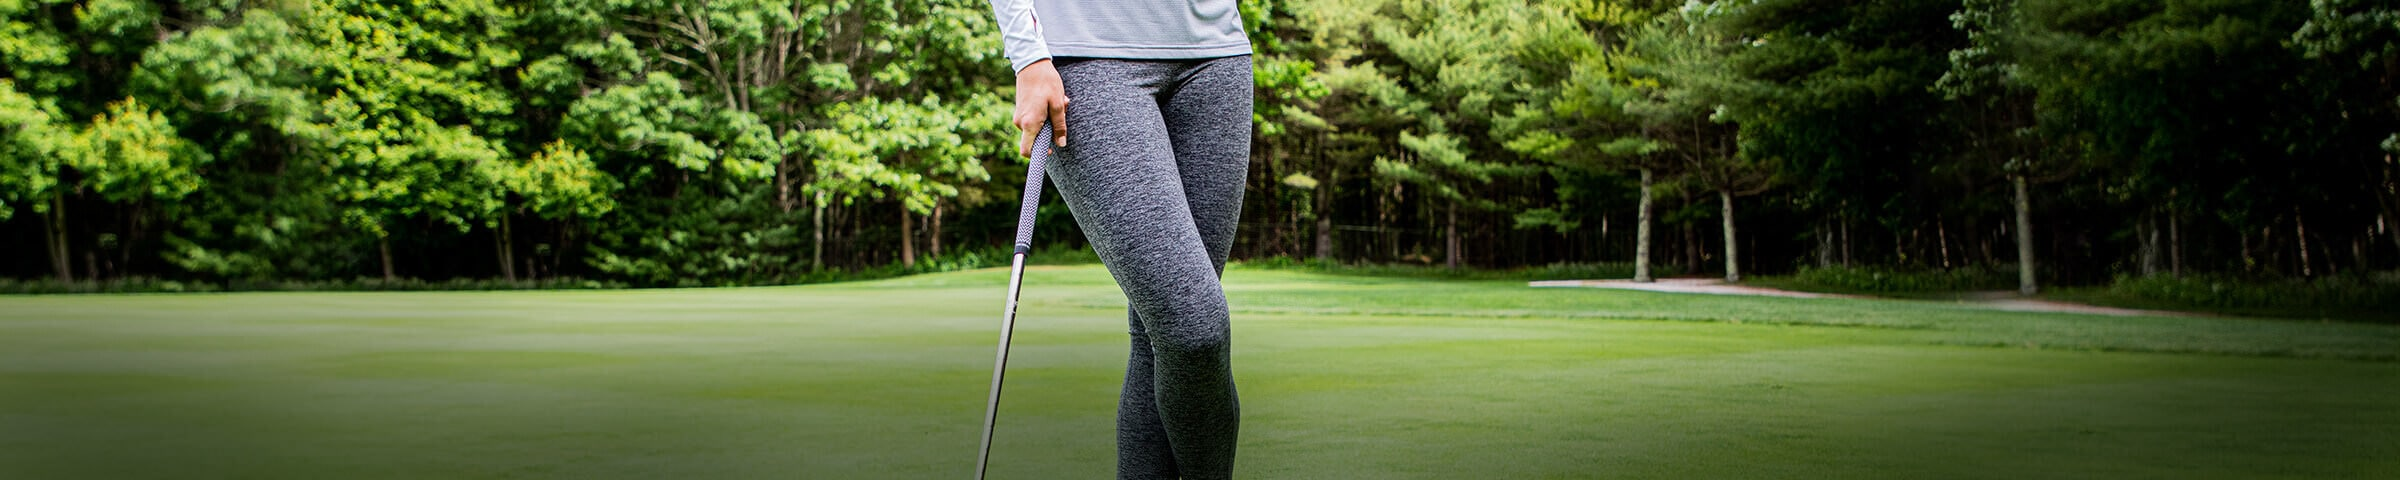 FootJoy Women's Golf Apparel - Bottoms